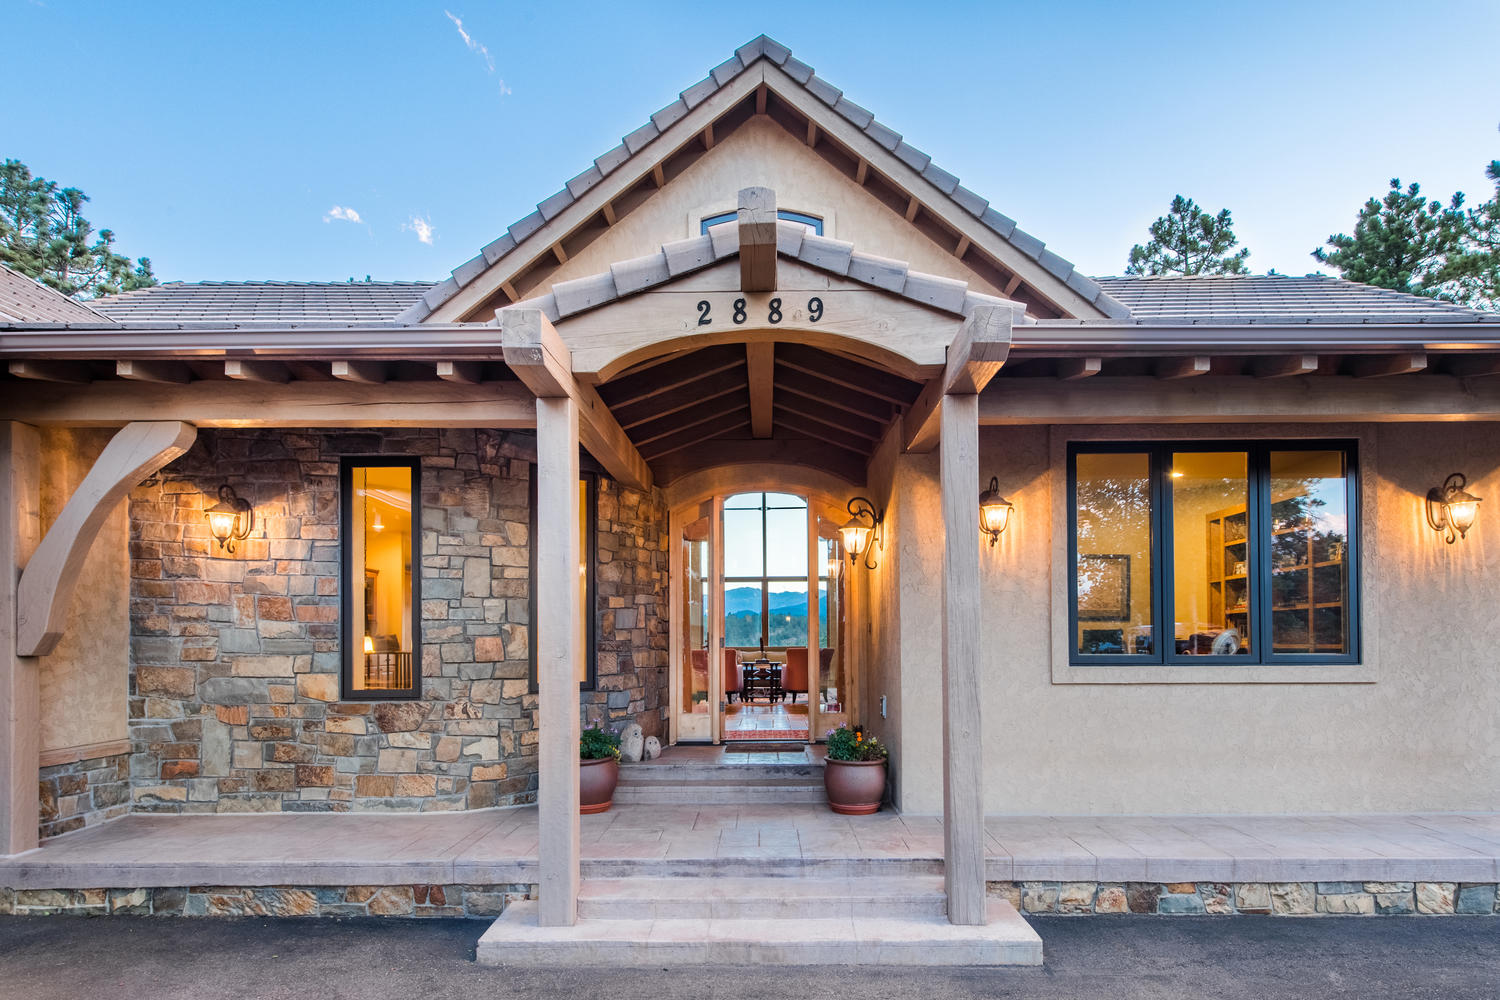 Nhà ở một gia đình vì Bán tại Breath Taking Views, Privacy and Style 2889 Highlands View Road Evergreen, Colorado, 80439 Hoa Kỳ